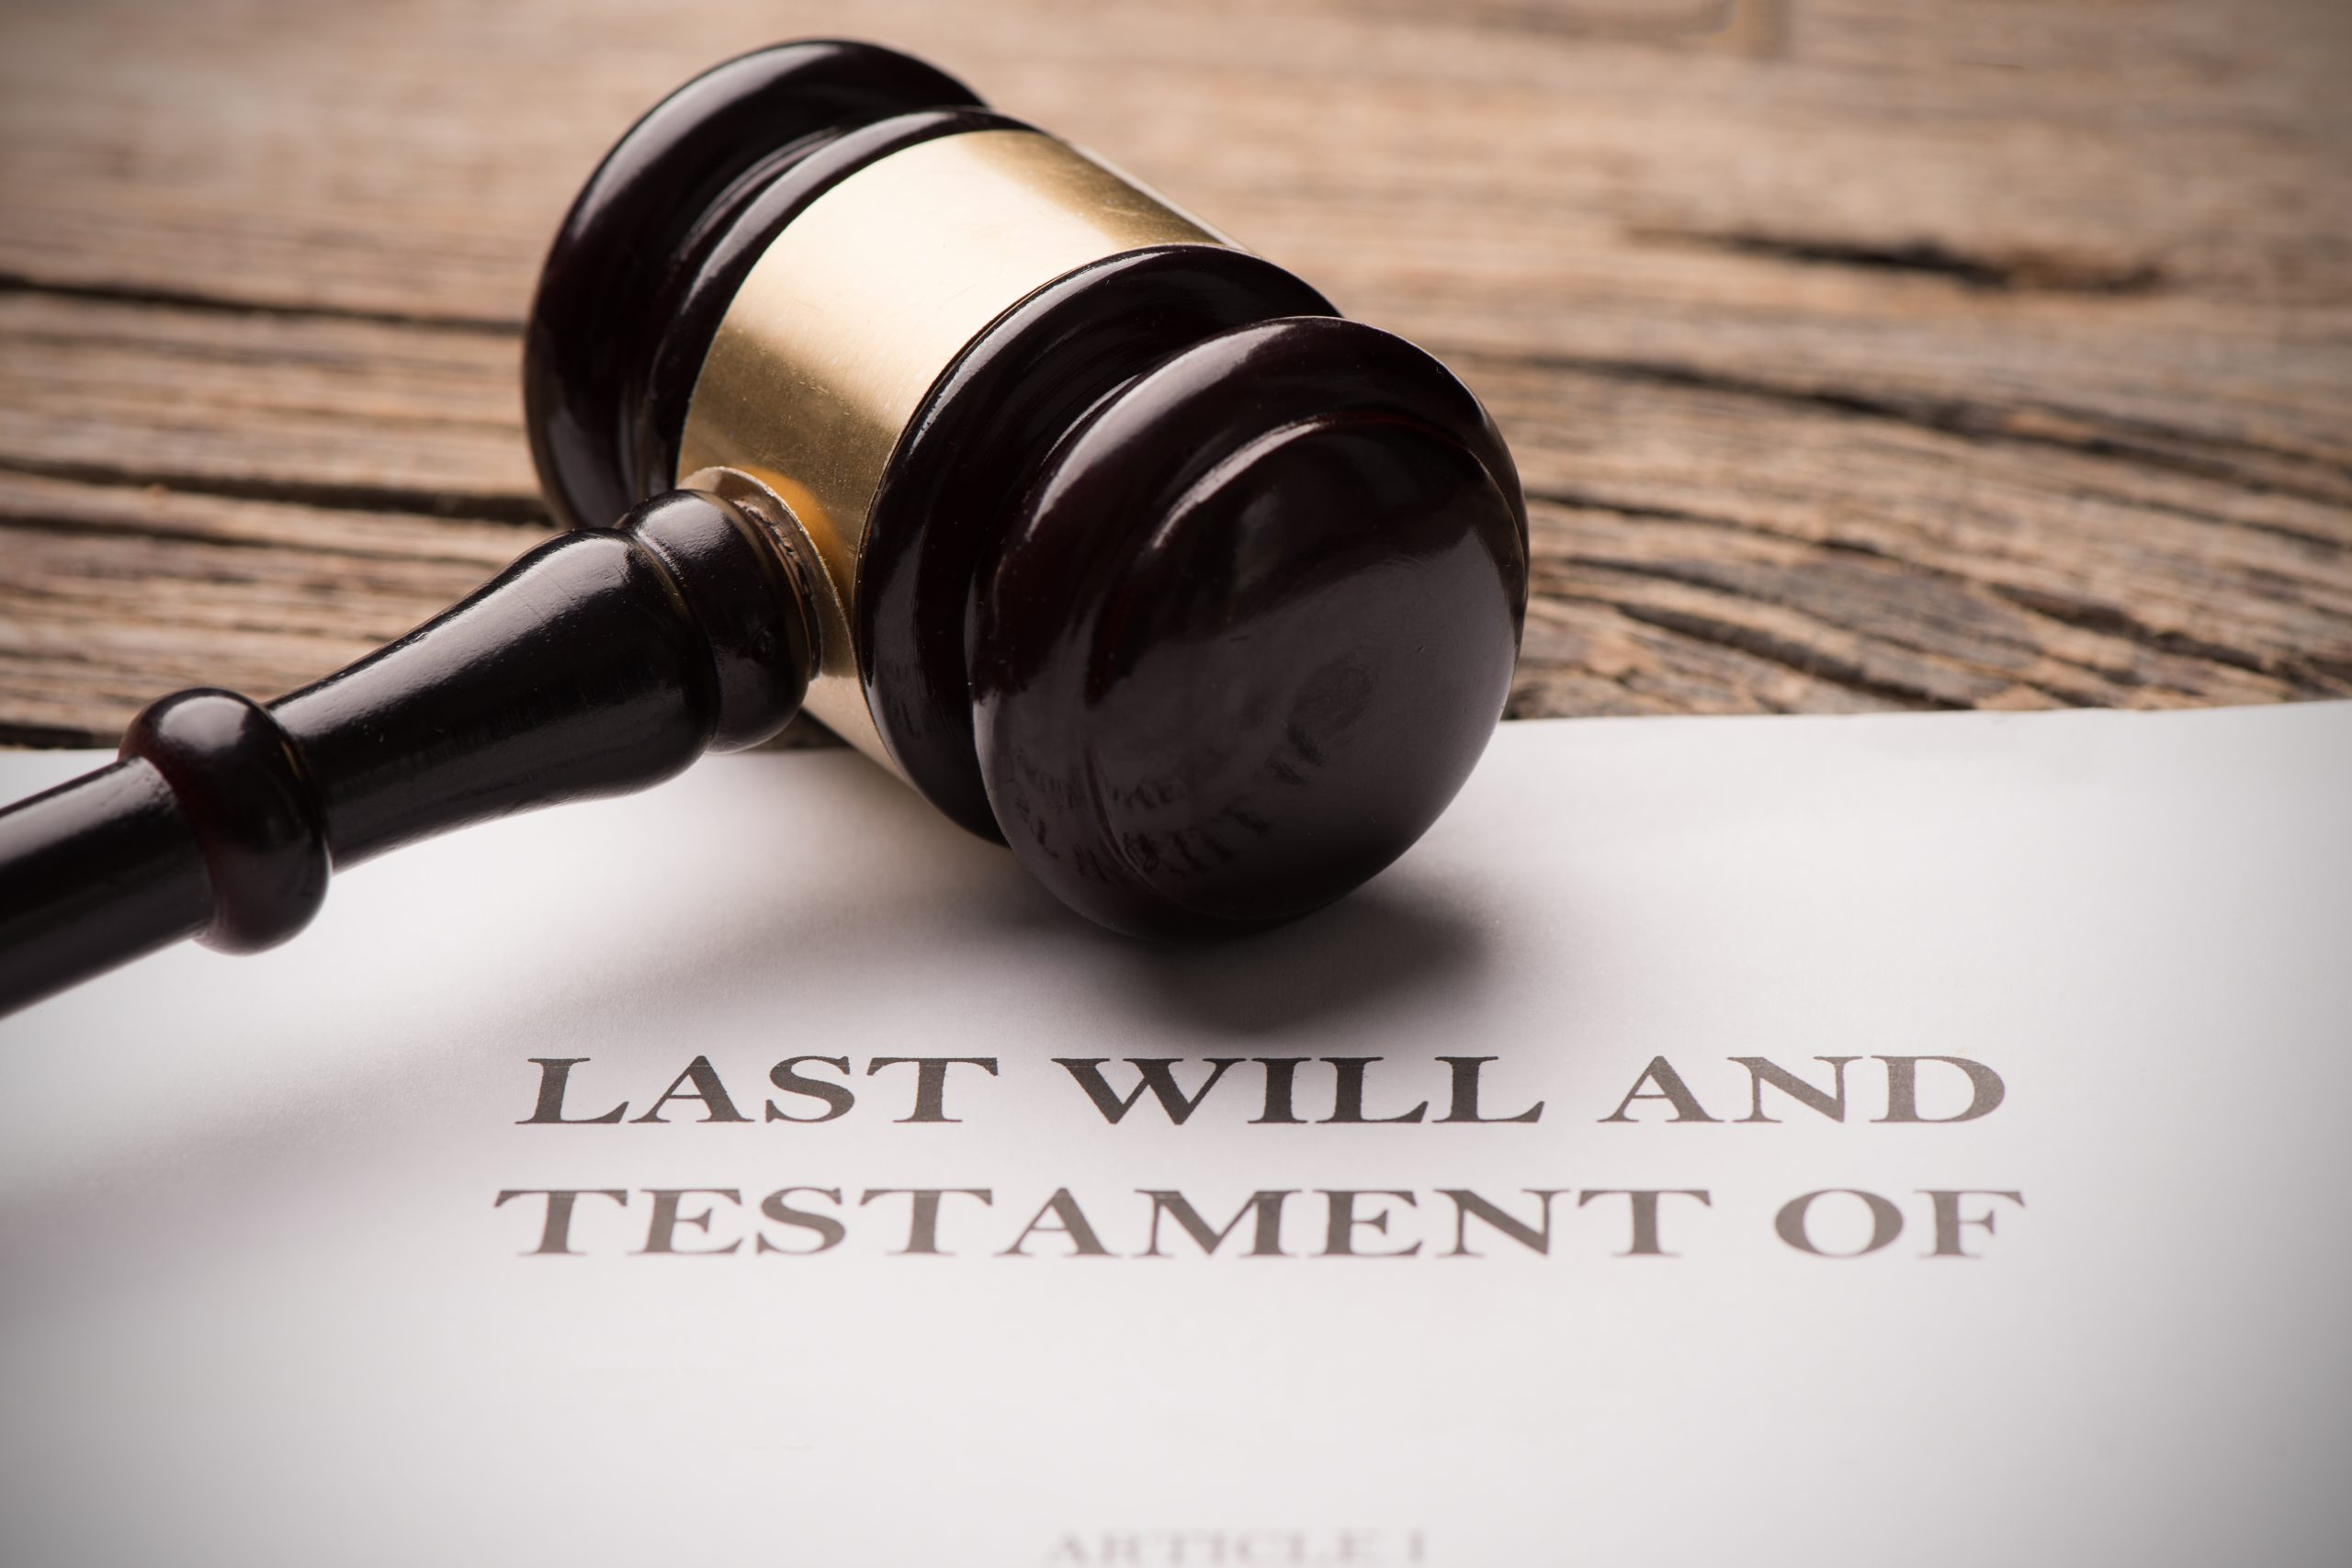 What happens when you die without a will?